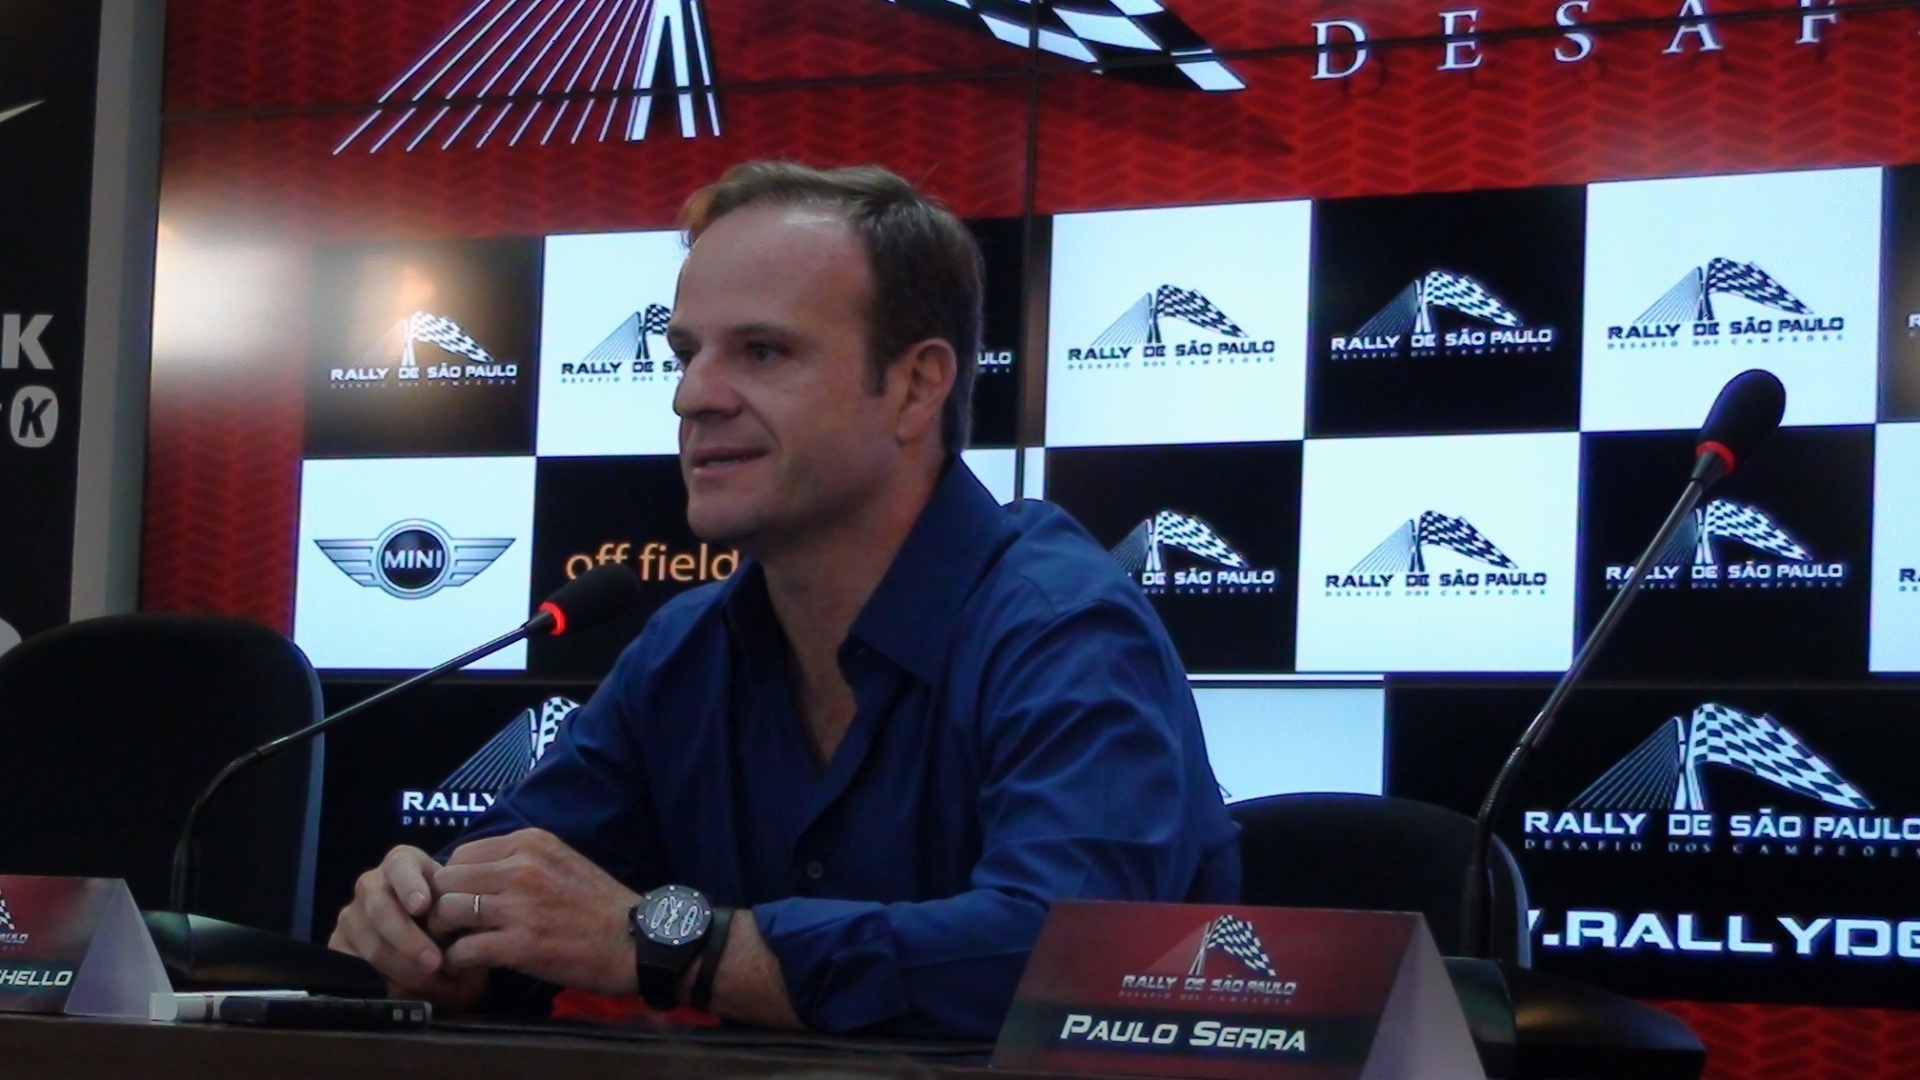 Rubens Barrichello anunciou nova corrida nesta tera-feira em entrevista no CT do Corinthians (29/11/11)